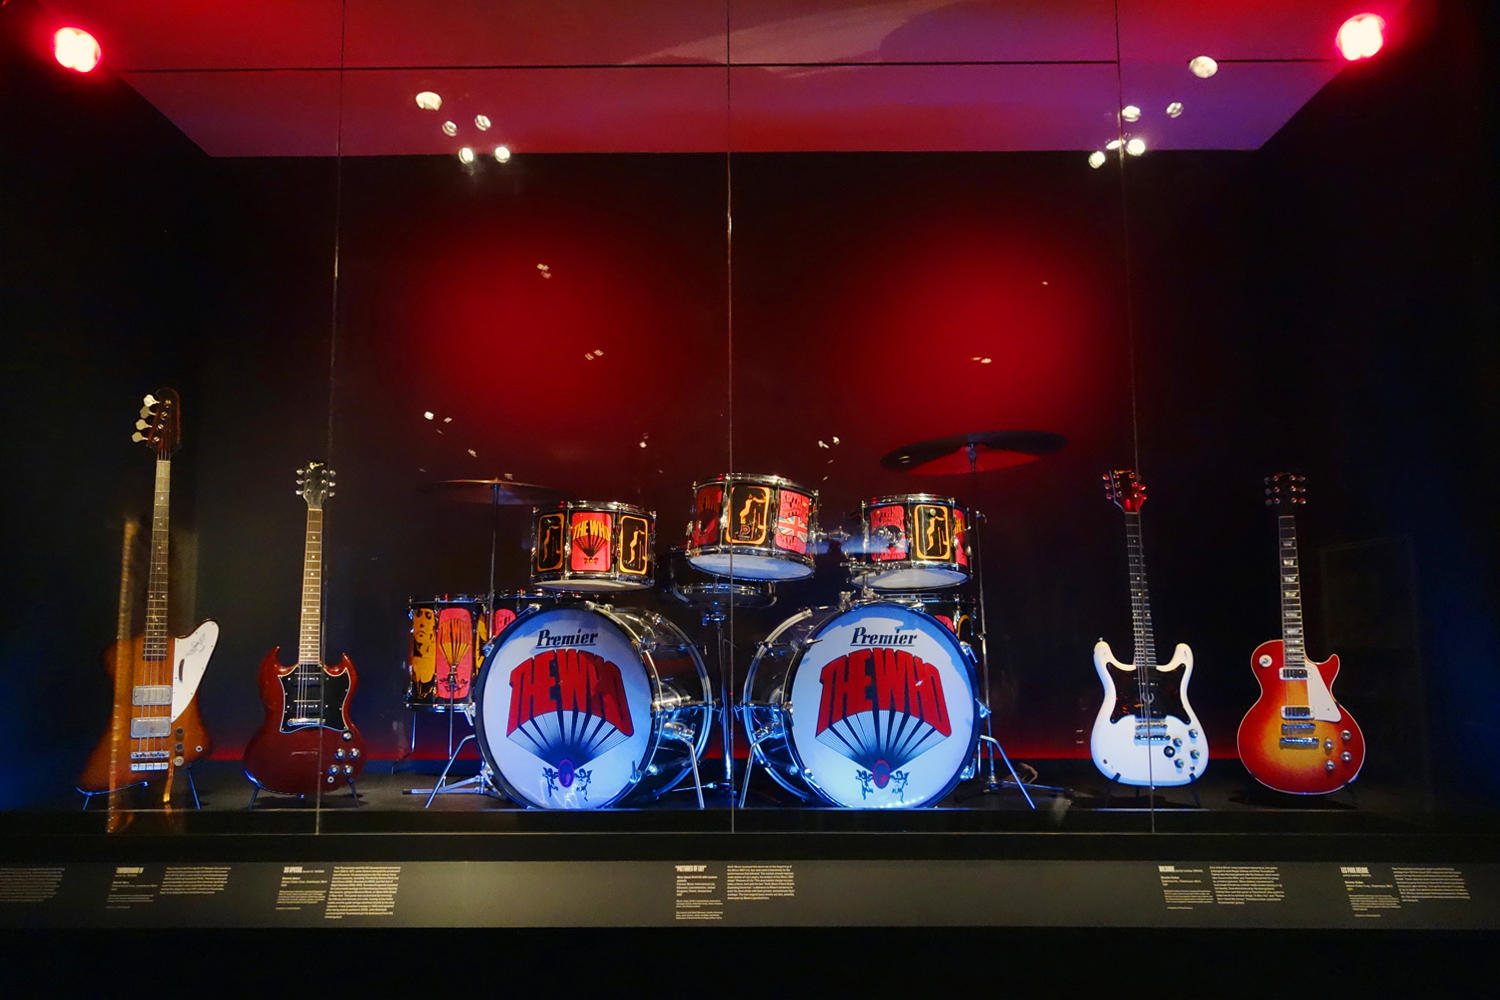 The Who's stage set